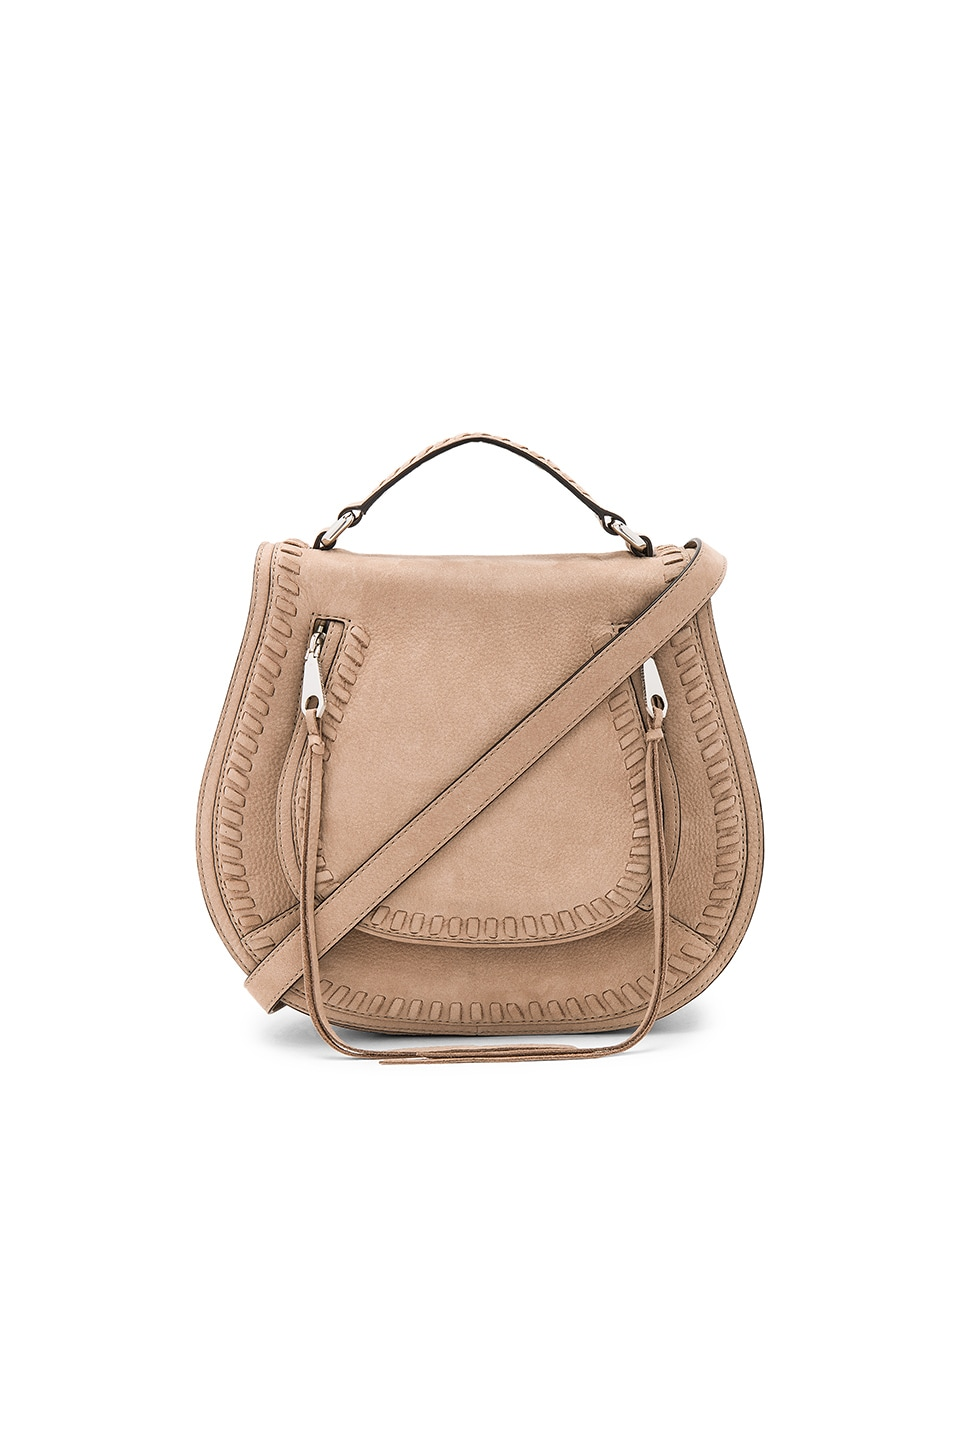 Rebecca Minkoff Small Vanity Saddle Bag in Sandstone